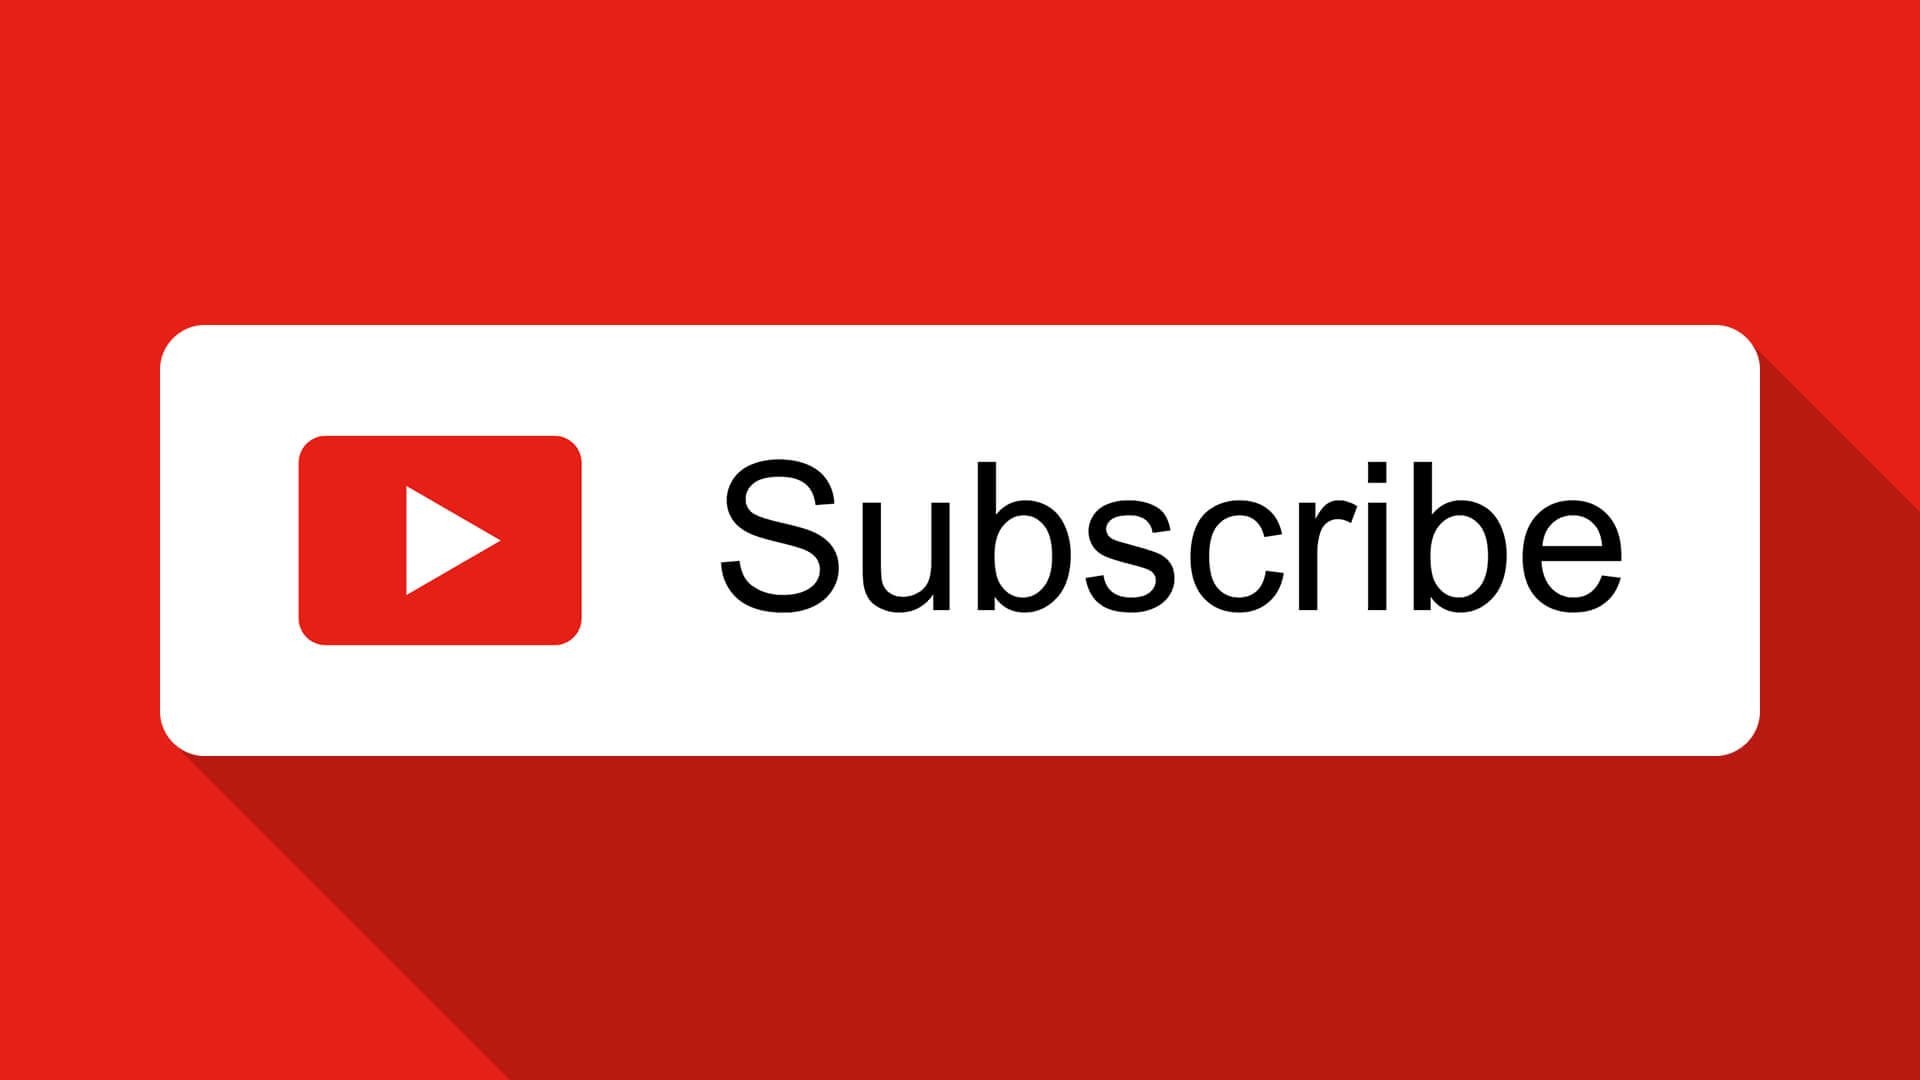 Free Youtube Subscribe Button Download Design Inspiration Dengan